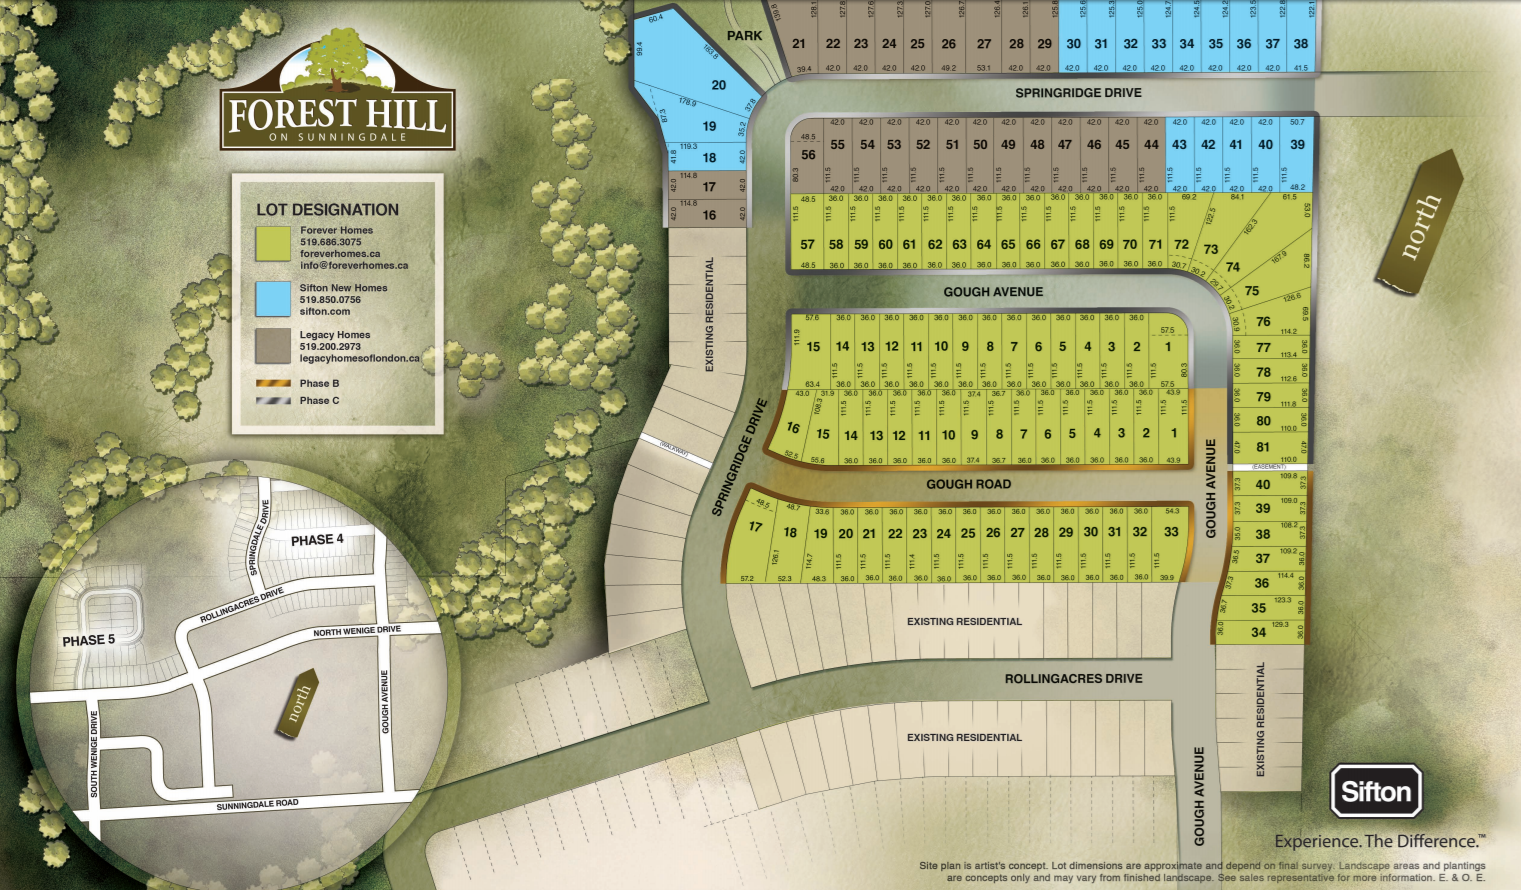 Site plan for Forest Hill in London, Ontario